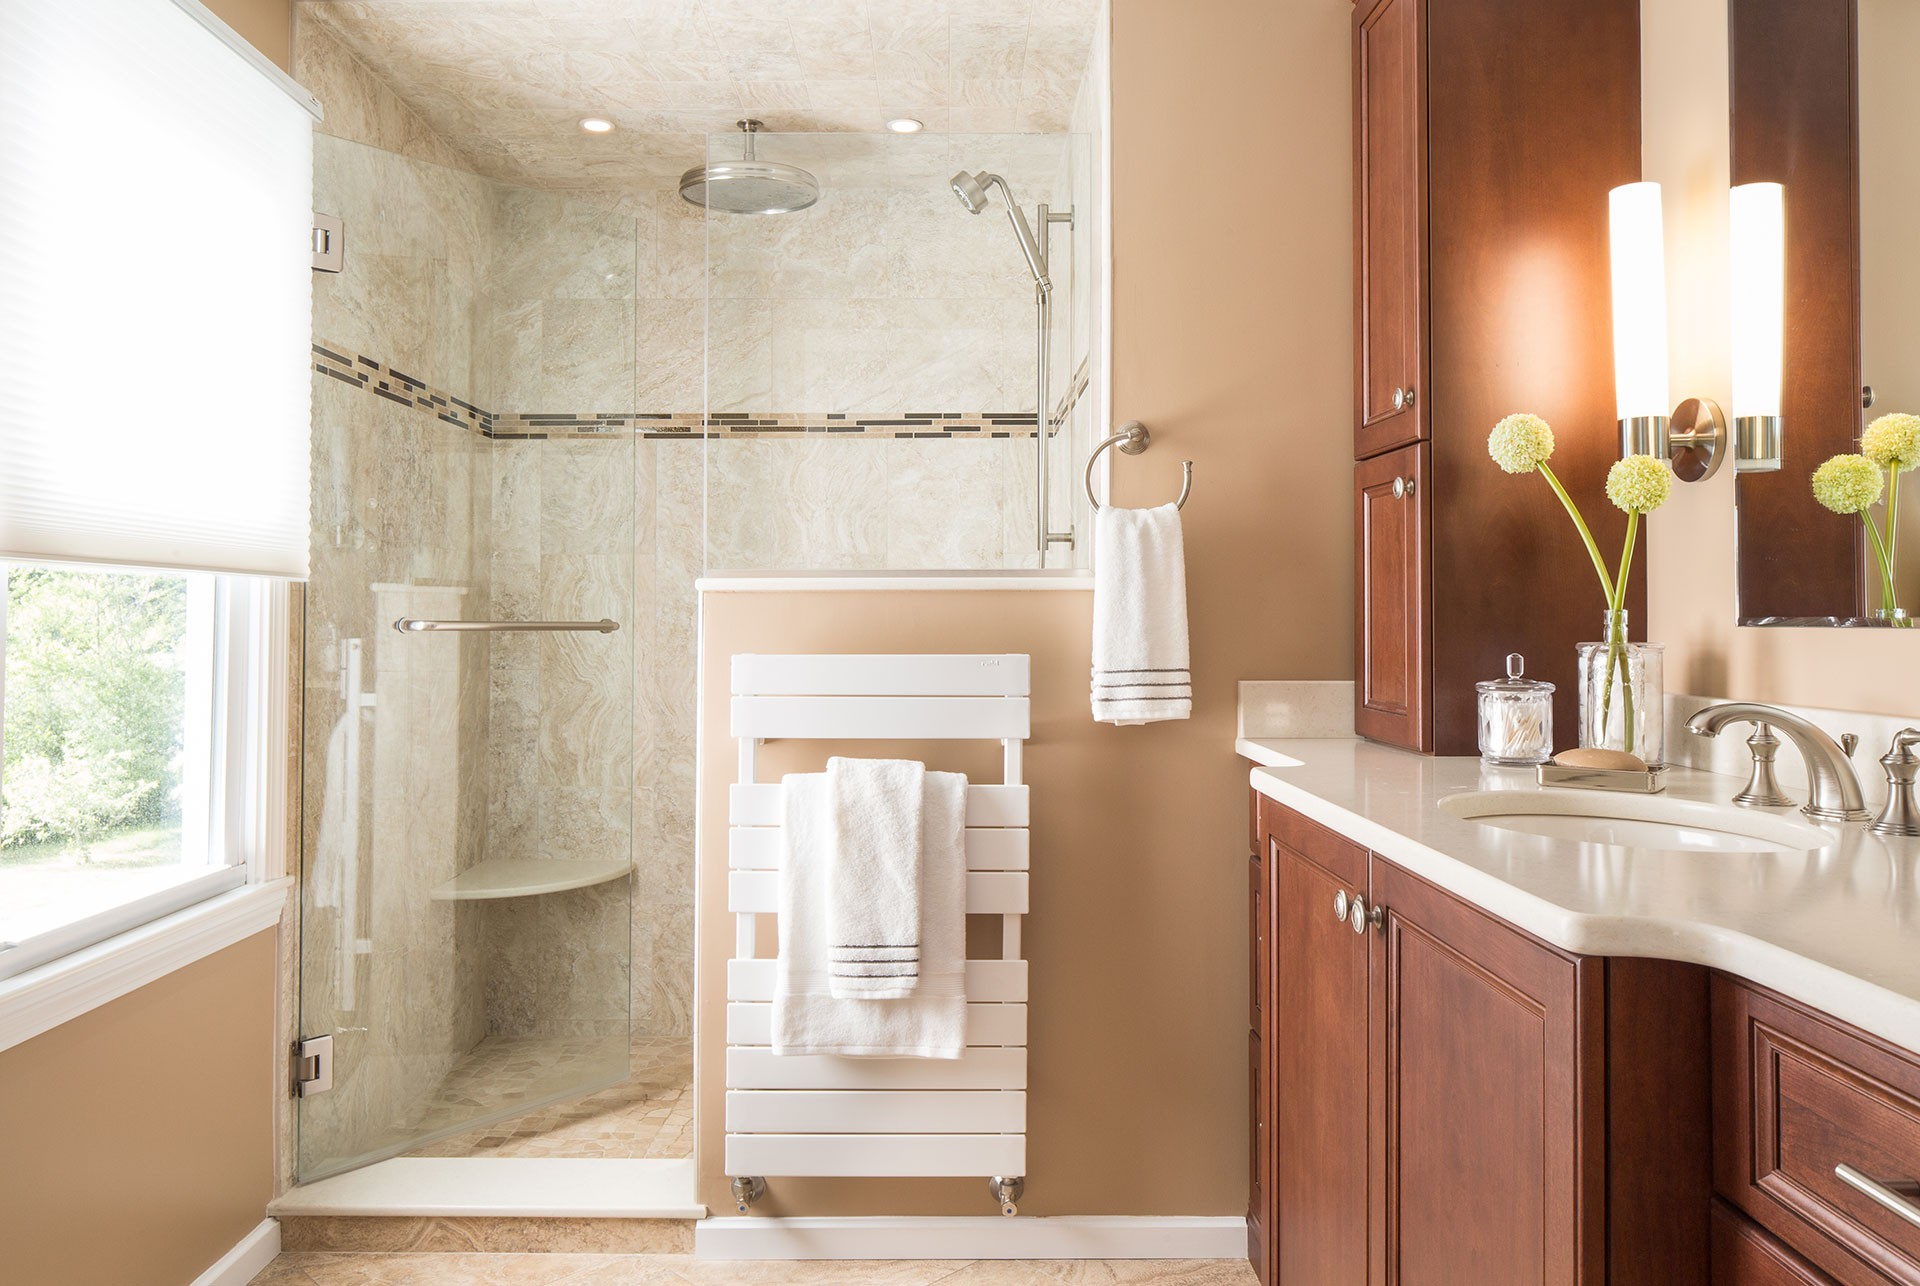 Merveilleux Top Bathroom Showrooms Ct Picture   Bathroom Design Ideas Gallery Image And  Wallpaper | Bathroom Design Ideas Gallery Image And Wallpaper